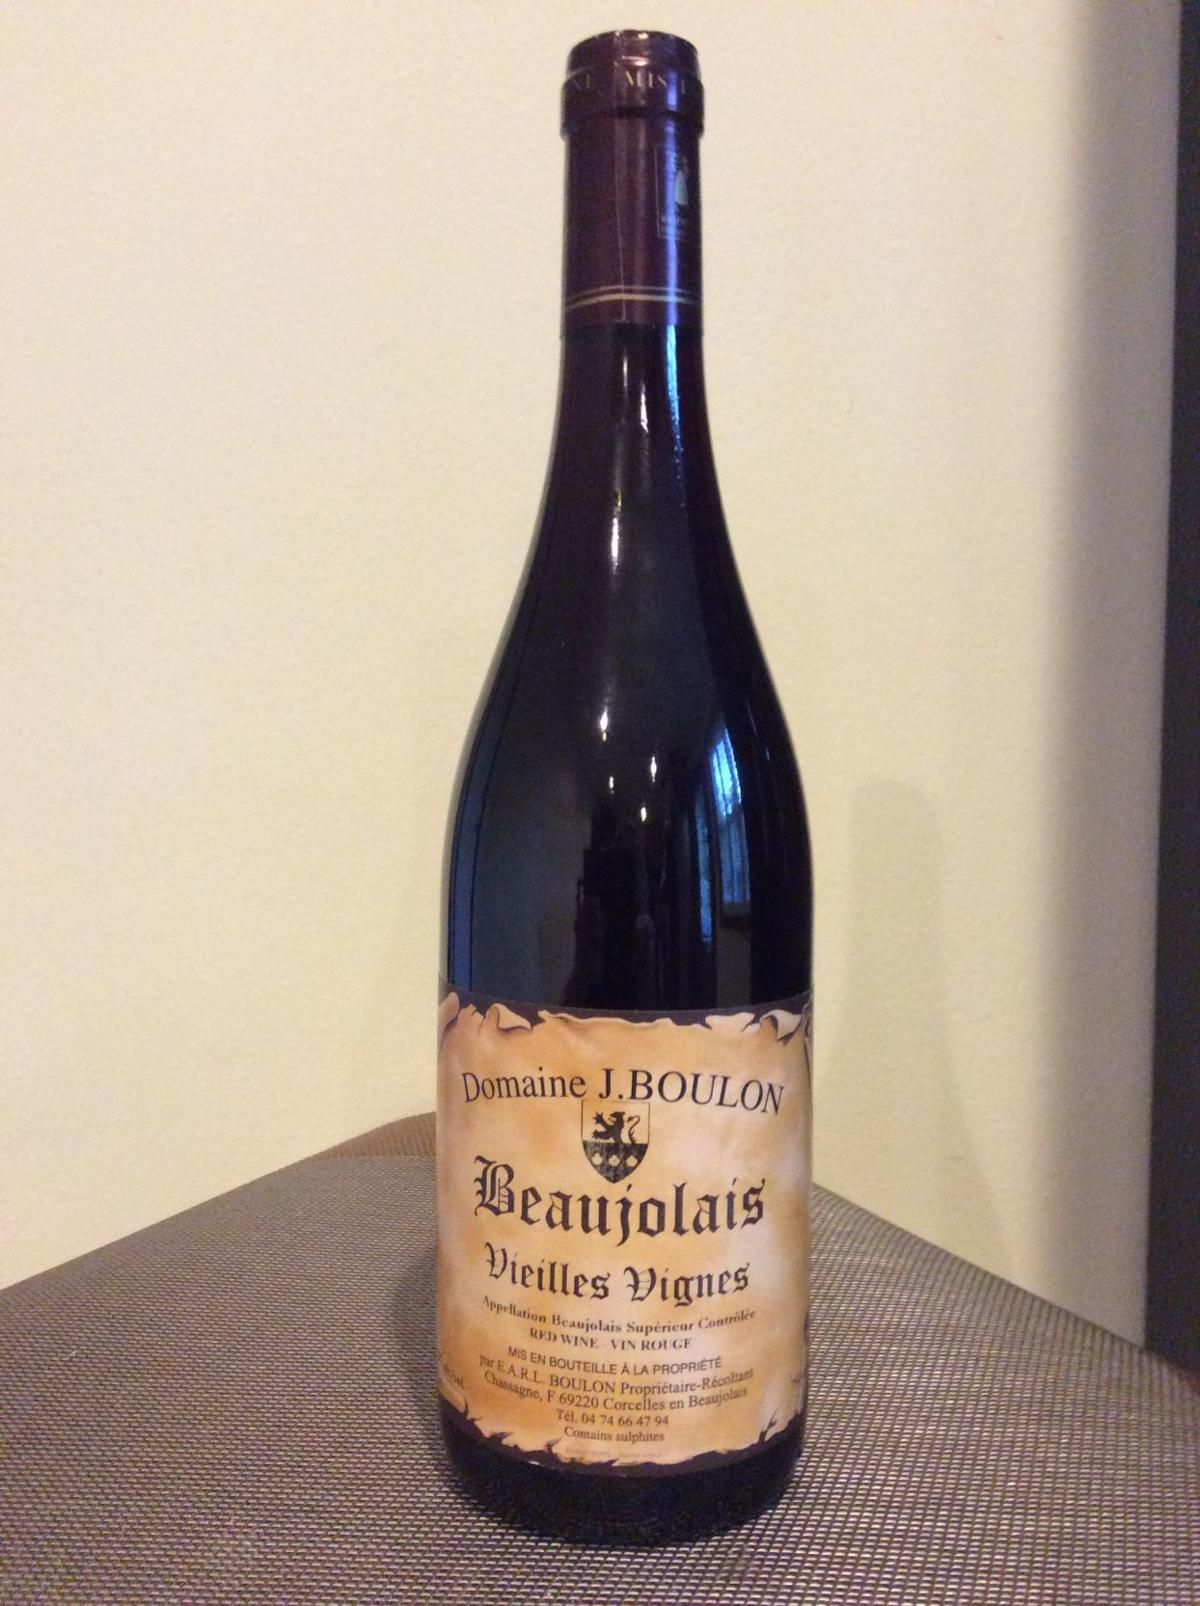 Wine Finds: Chilled Beaujolais for warm weather